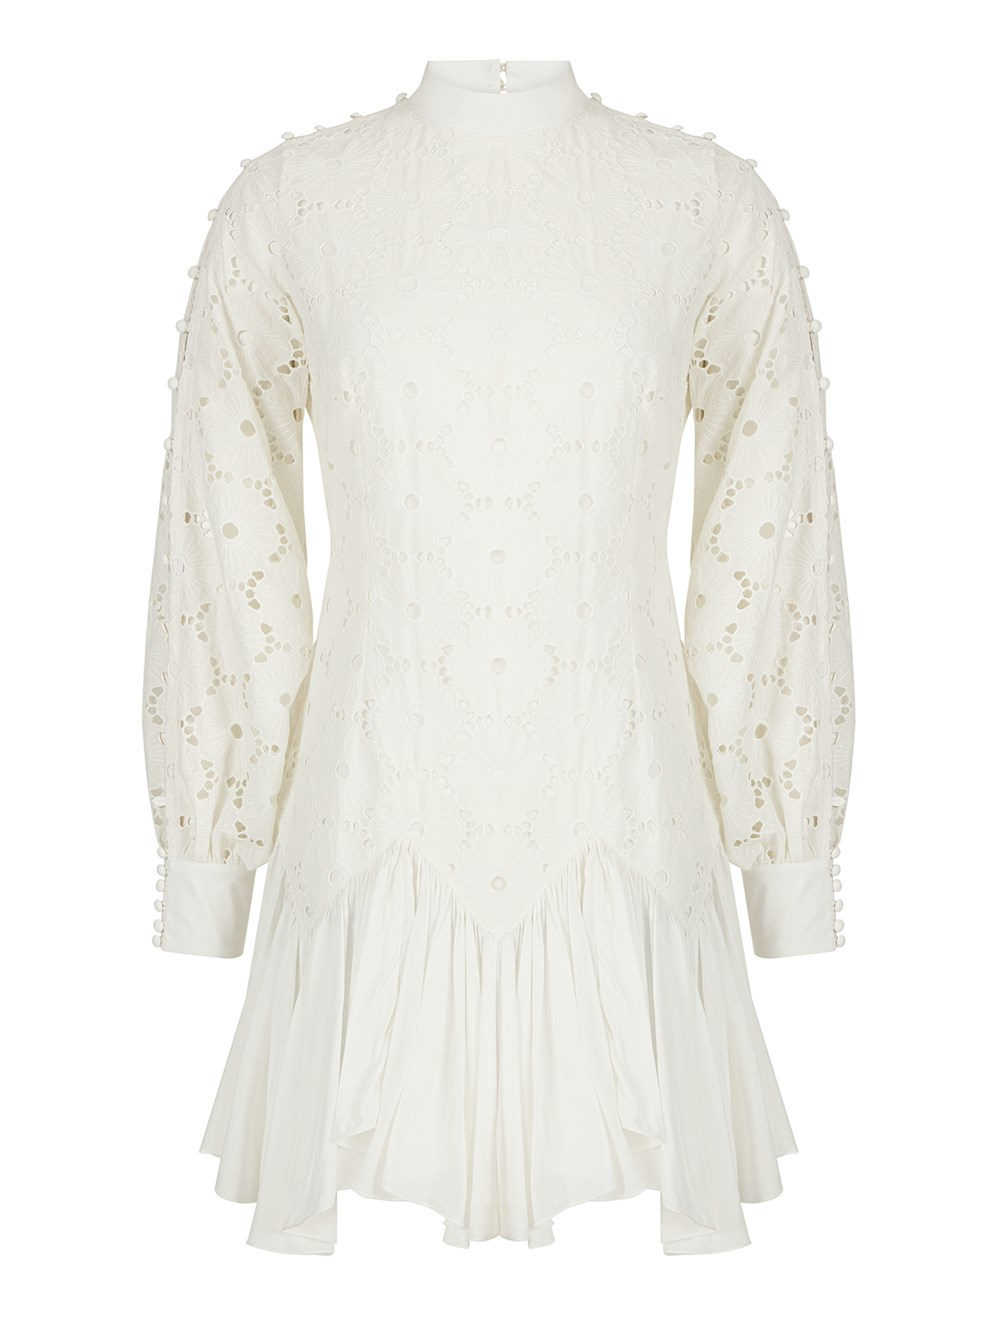 BUTTON DETAILED BRODERIE DRESS